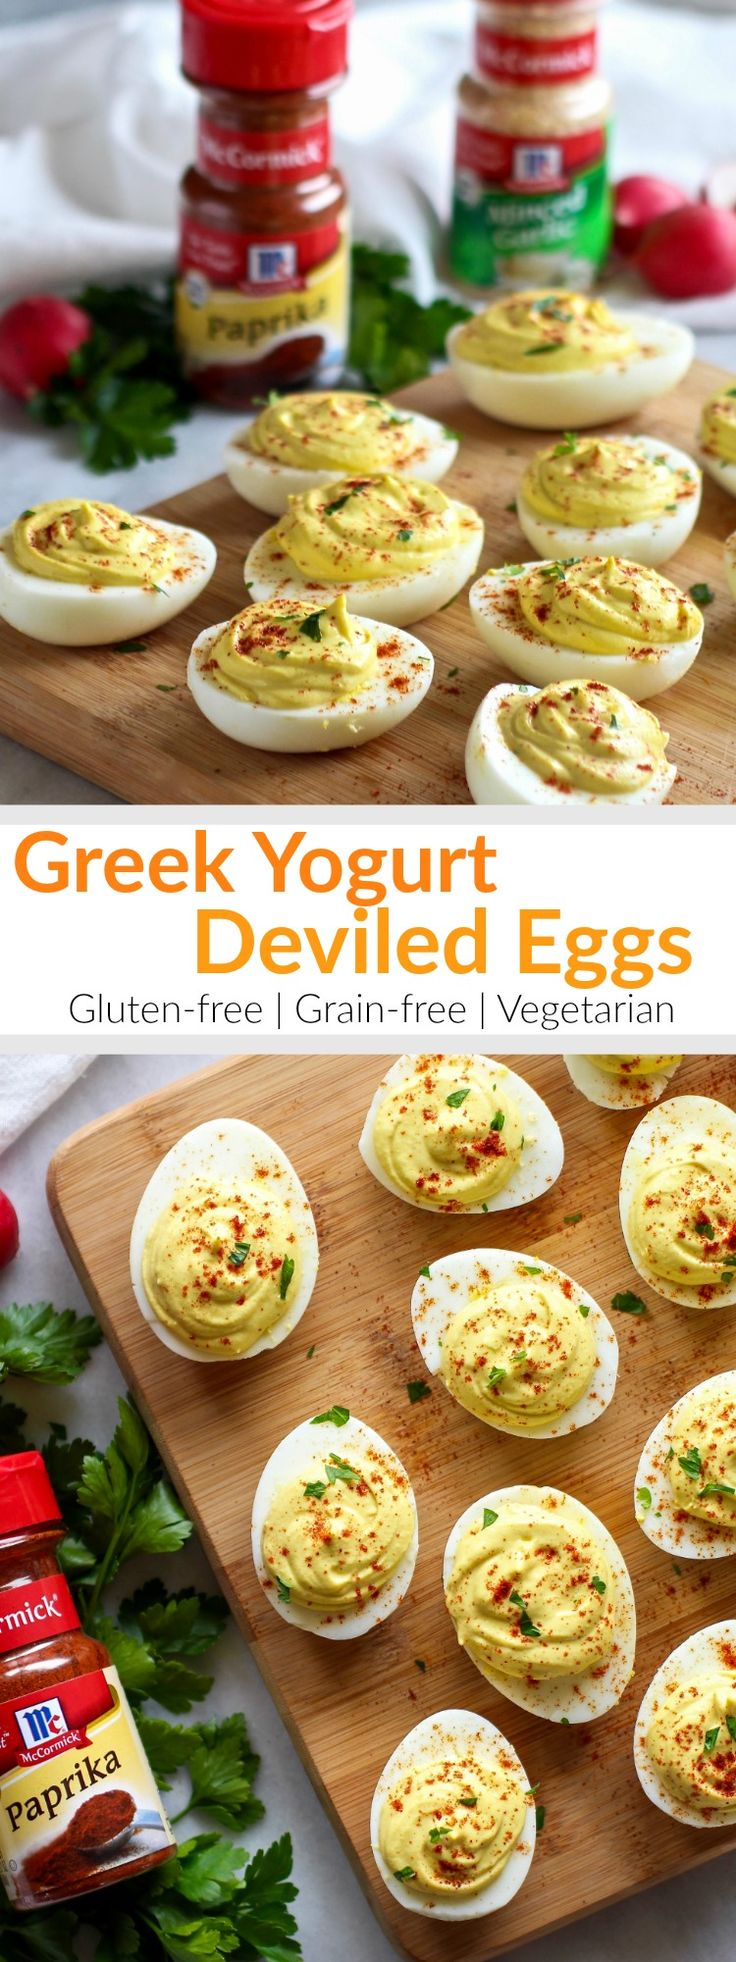 Greek yogurt takes the place of mayo in our Greek Yogurt Deviled Eggs ...